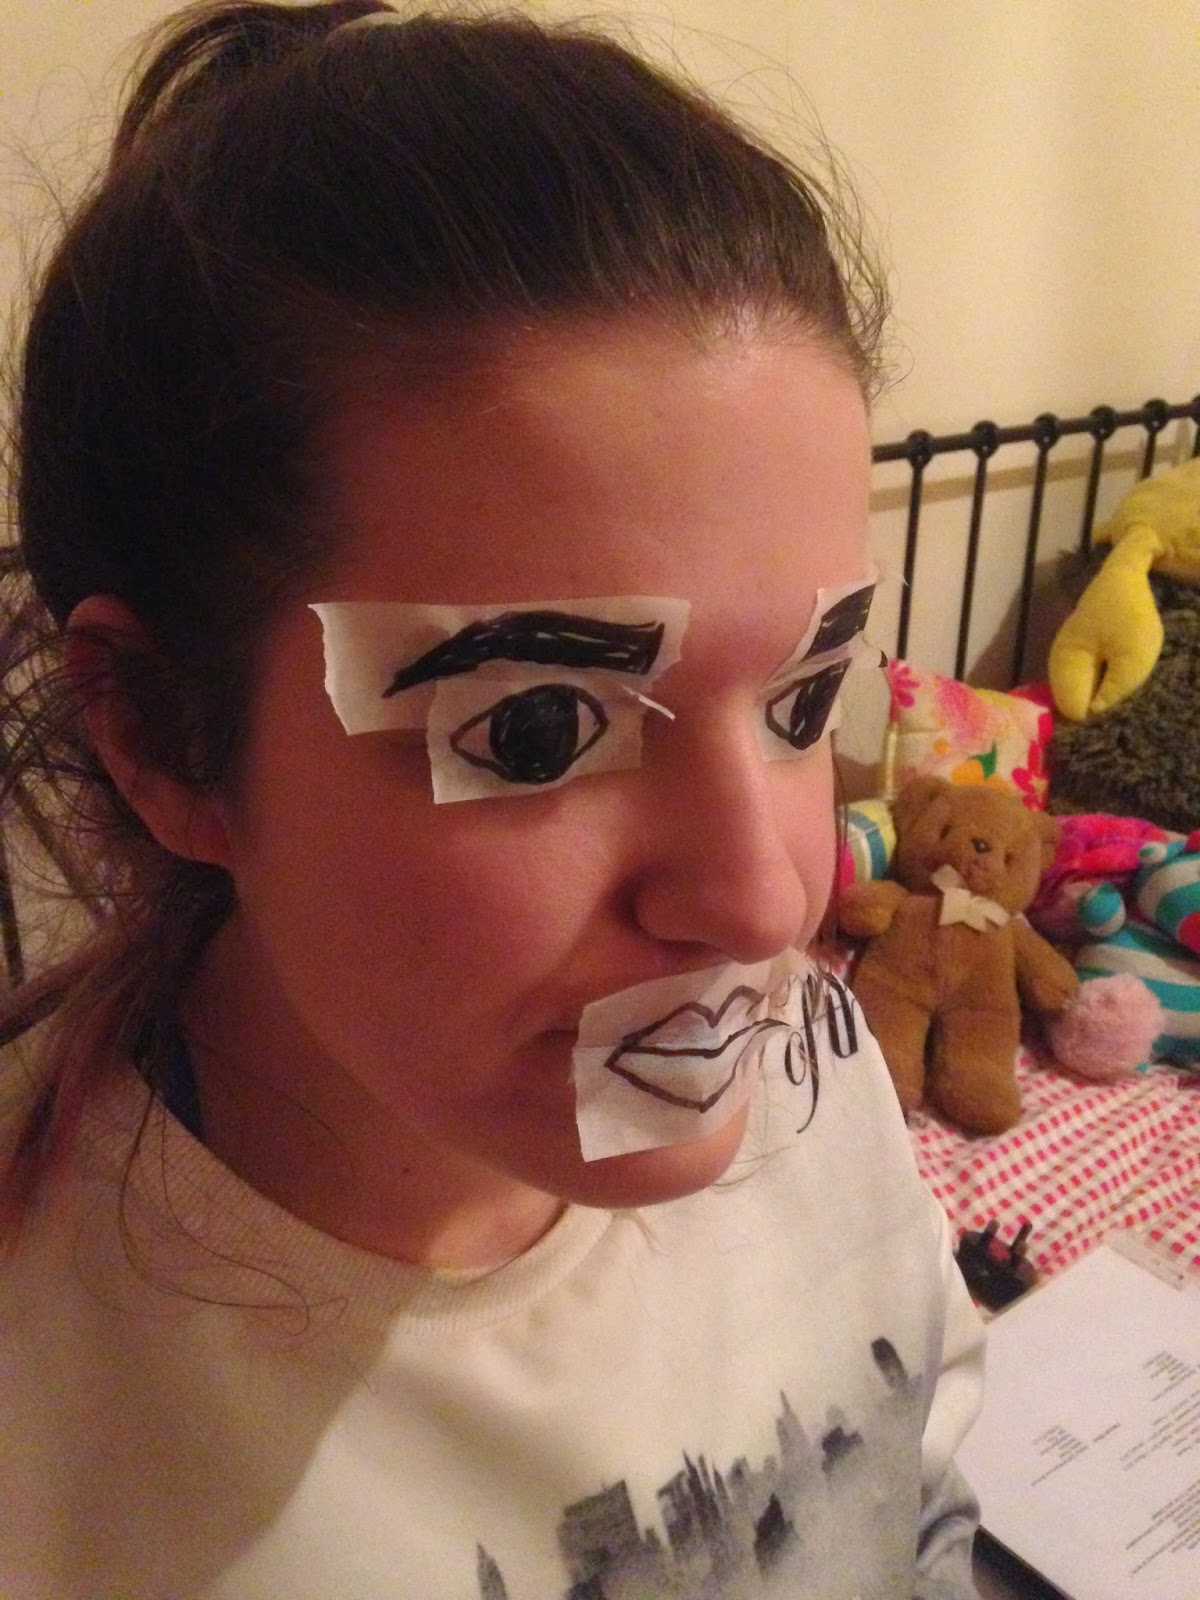 Tape face doll